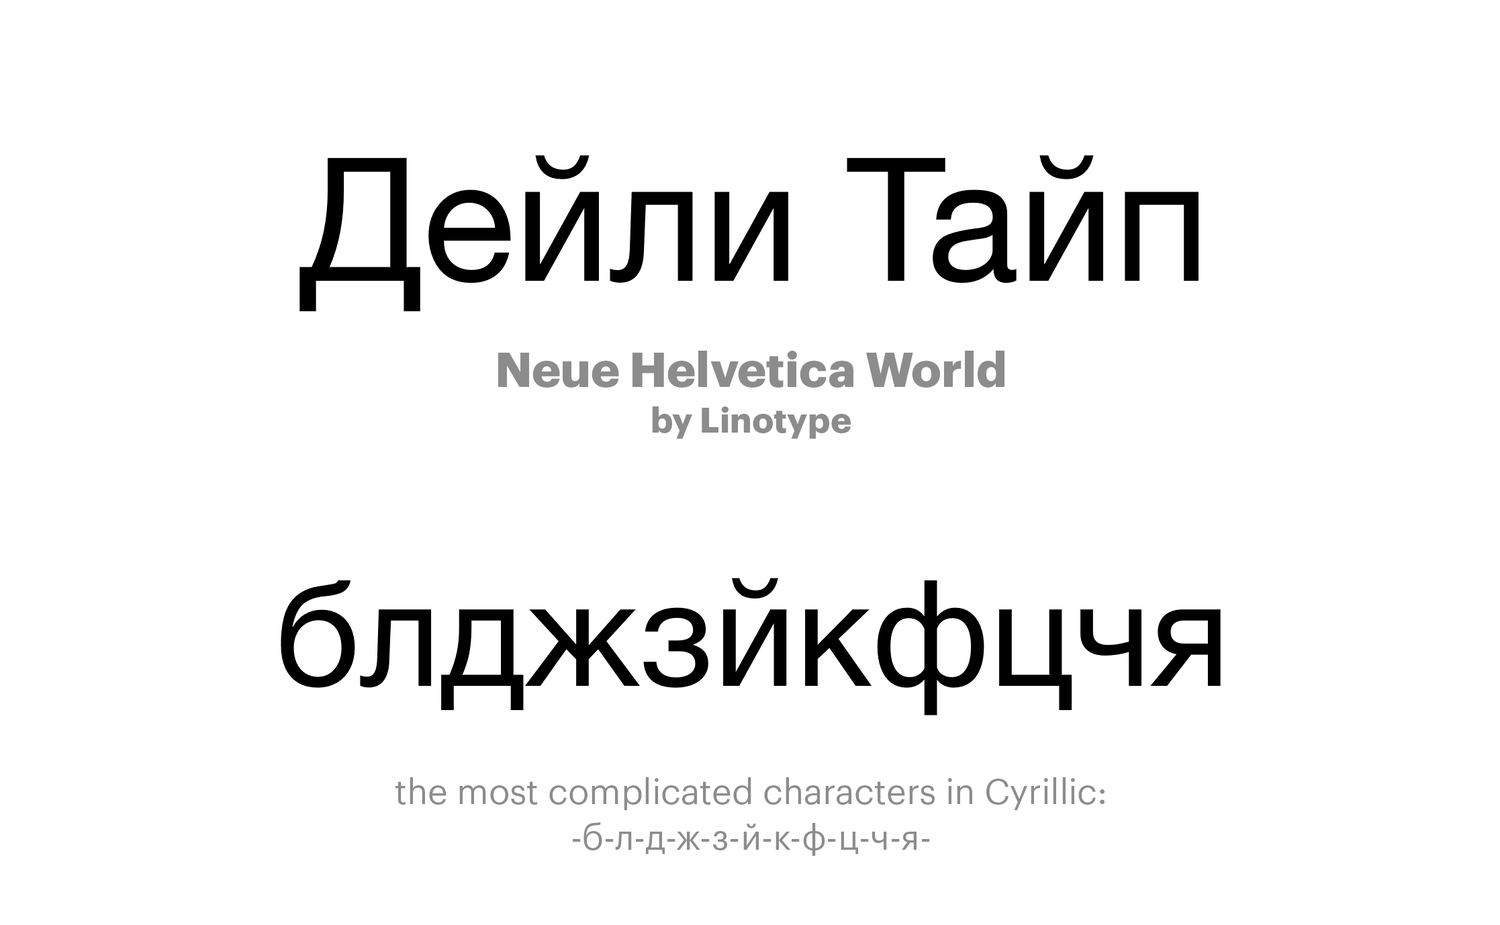 Neue-Helvetica-World-by-Linotype